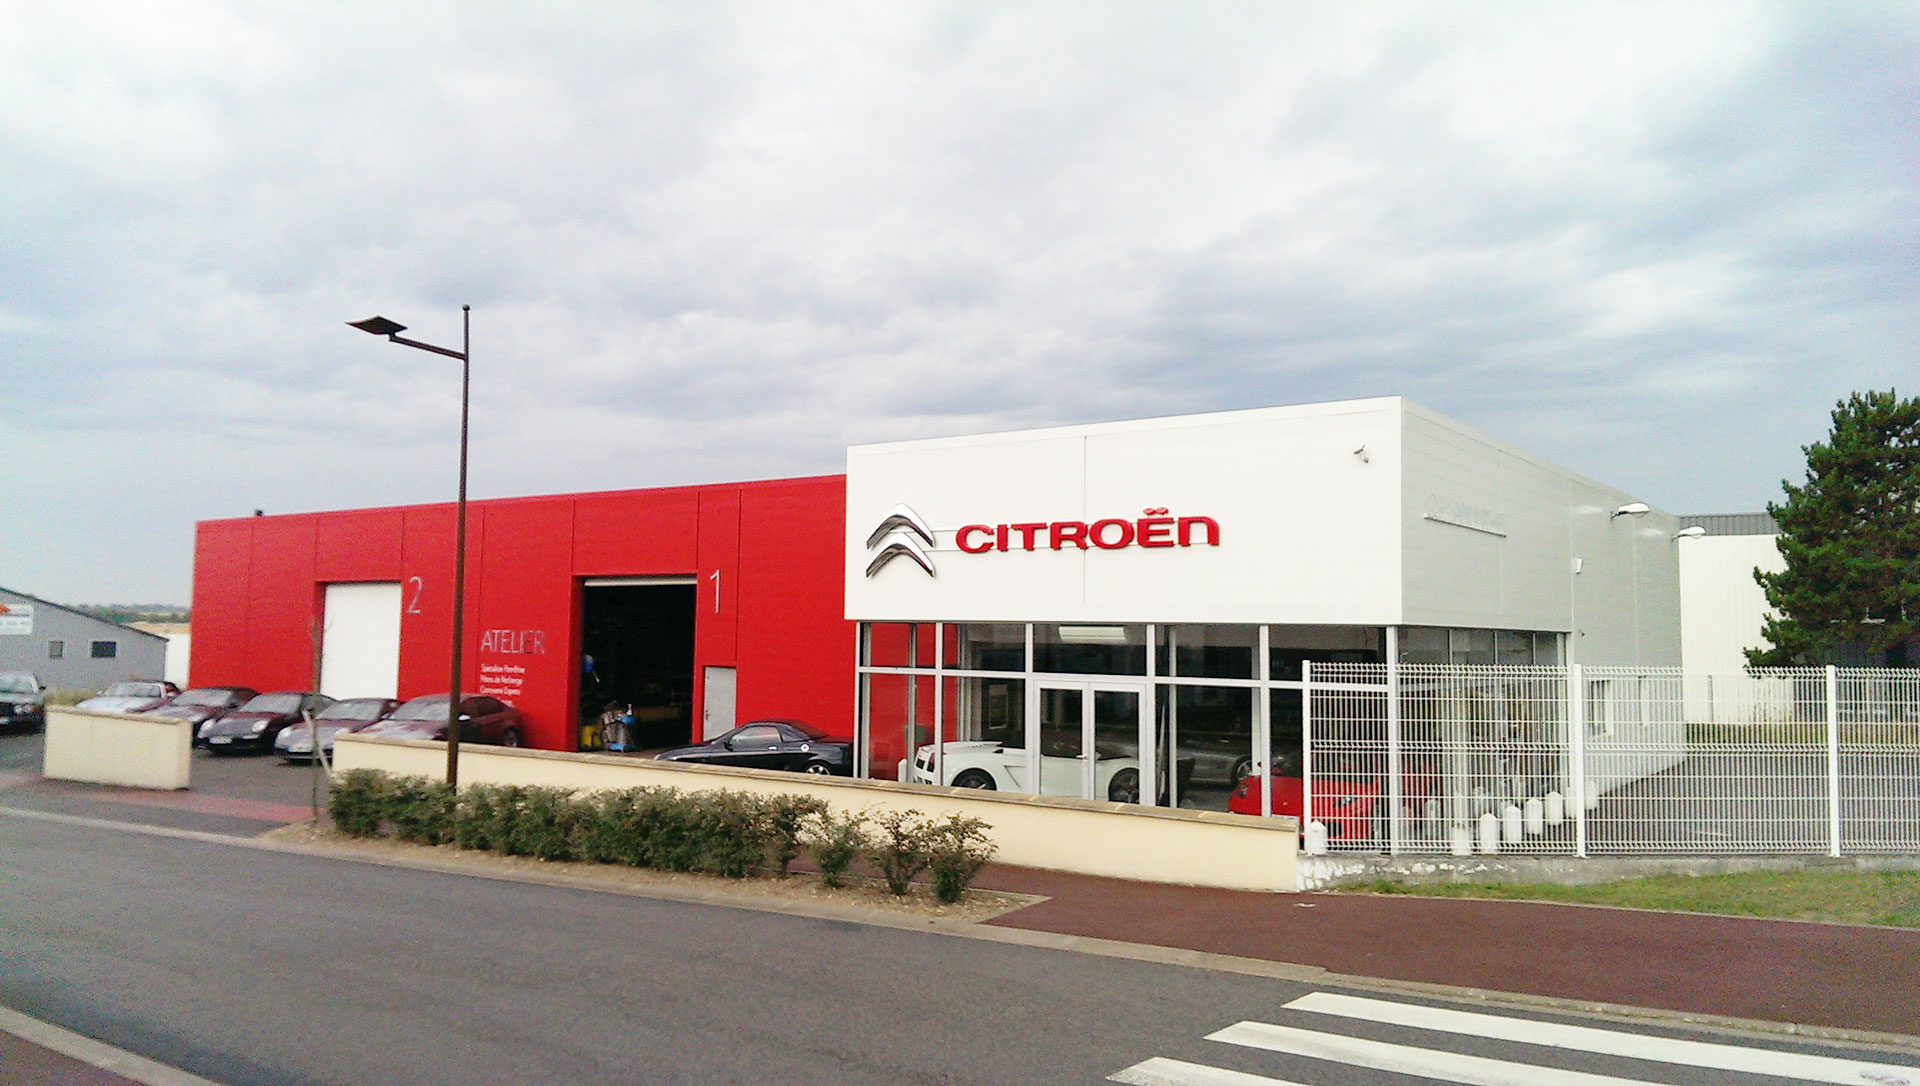 Garage citro n batayer saint mathieu r paration de for Garage citroen vierzon